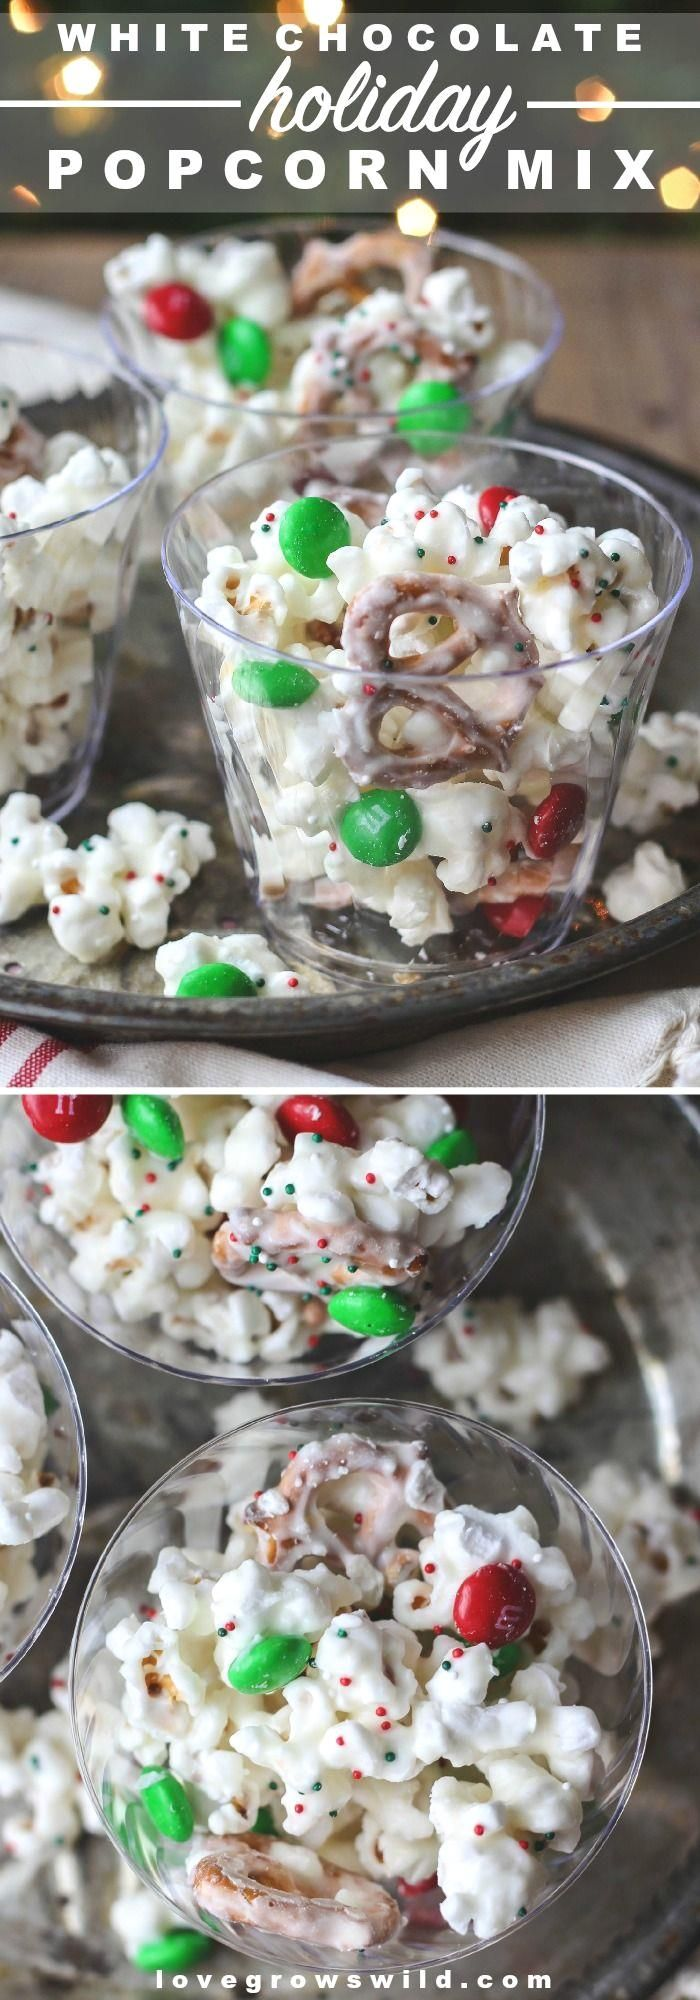 how to make popcorn mix